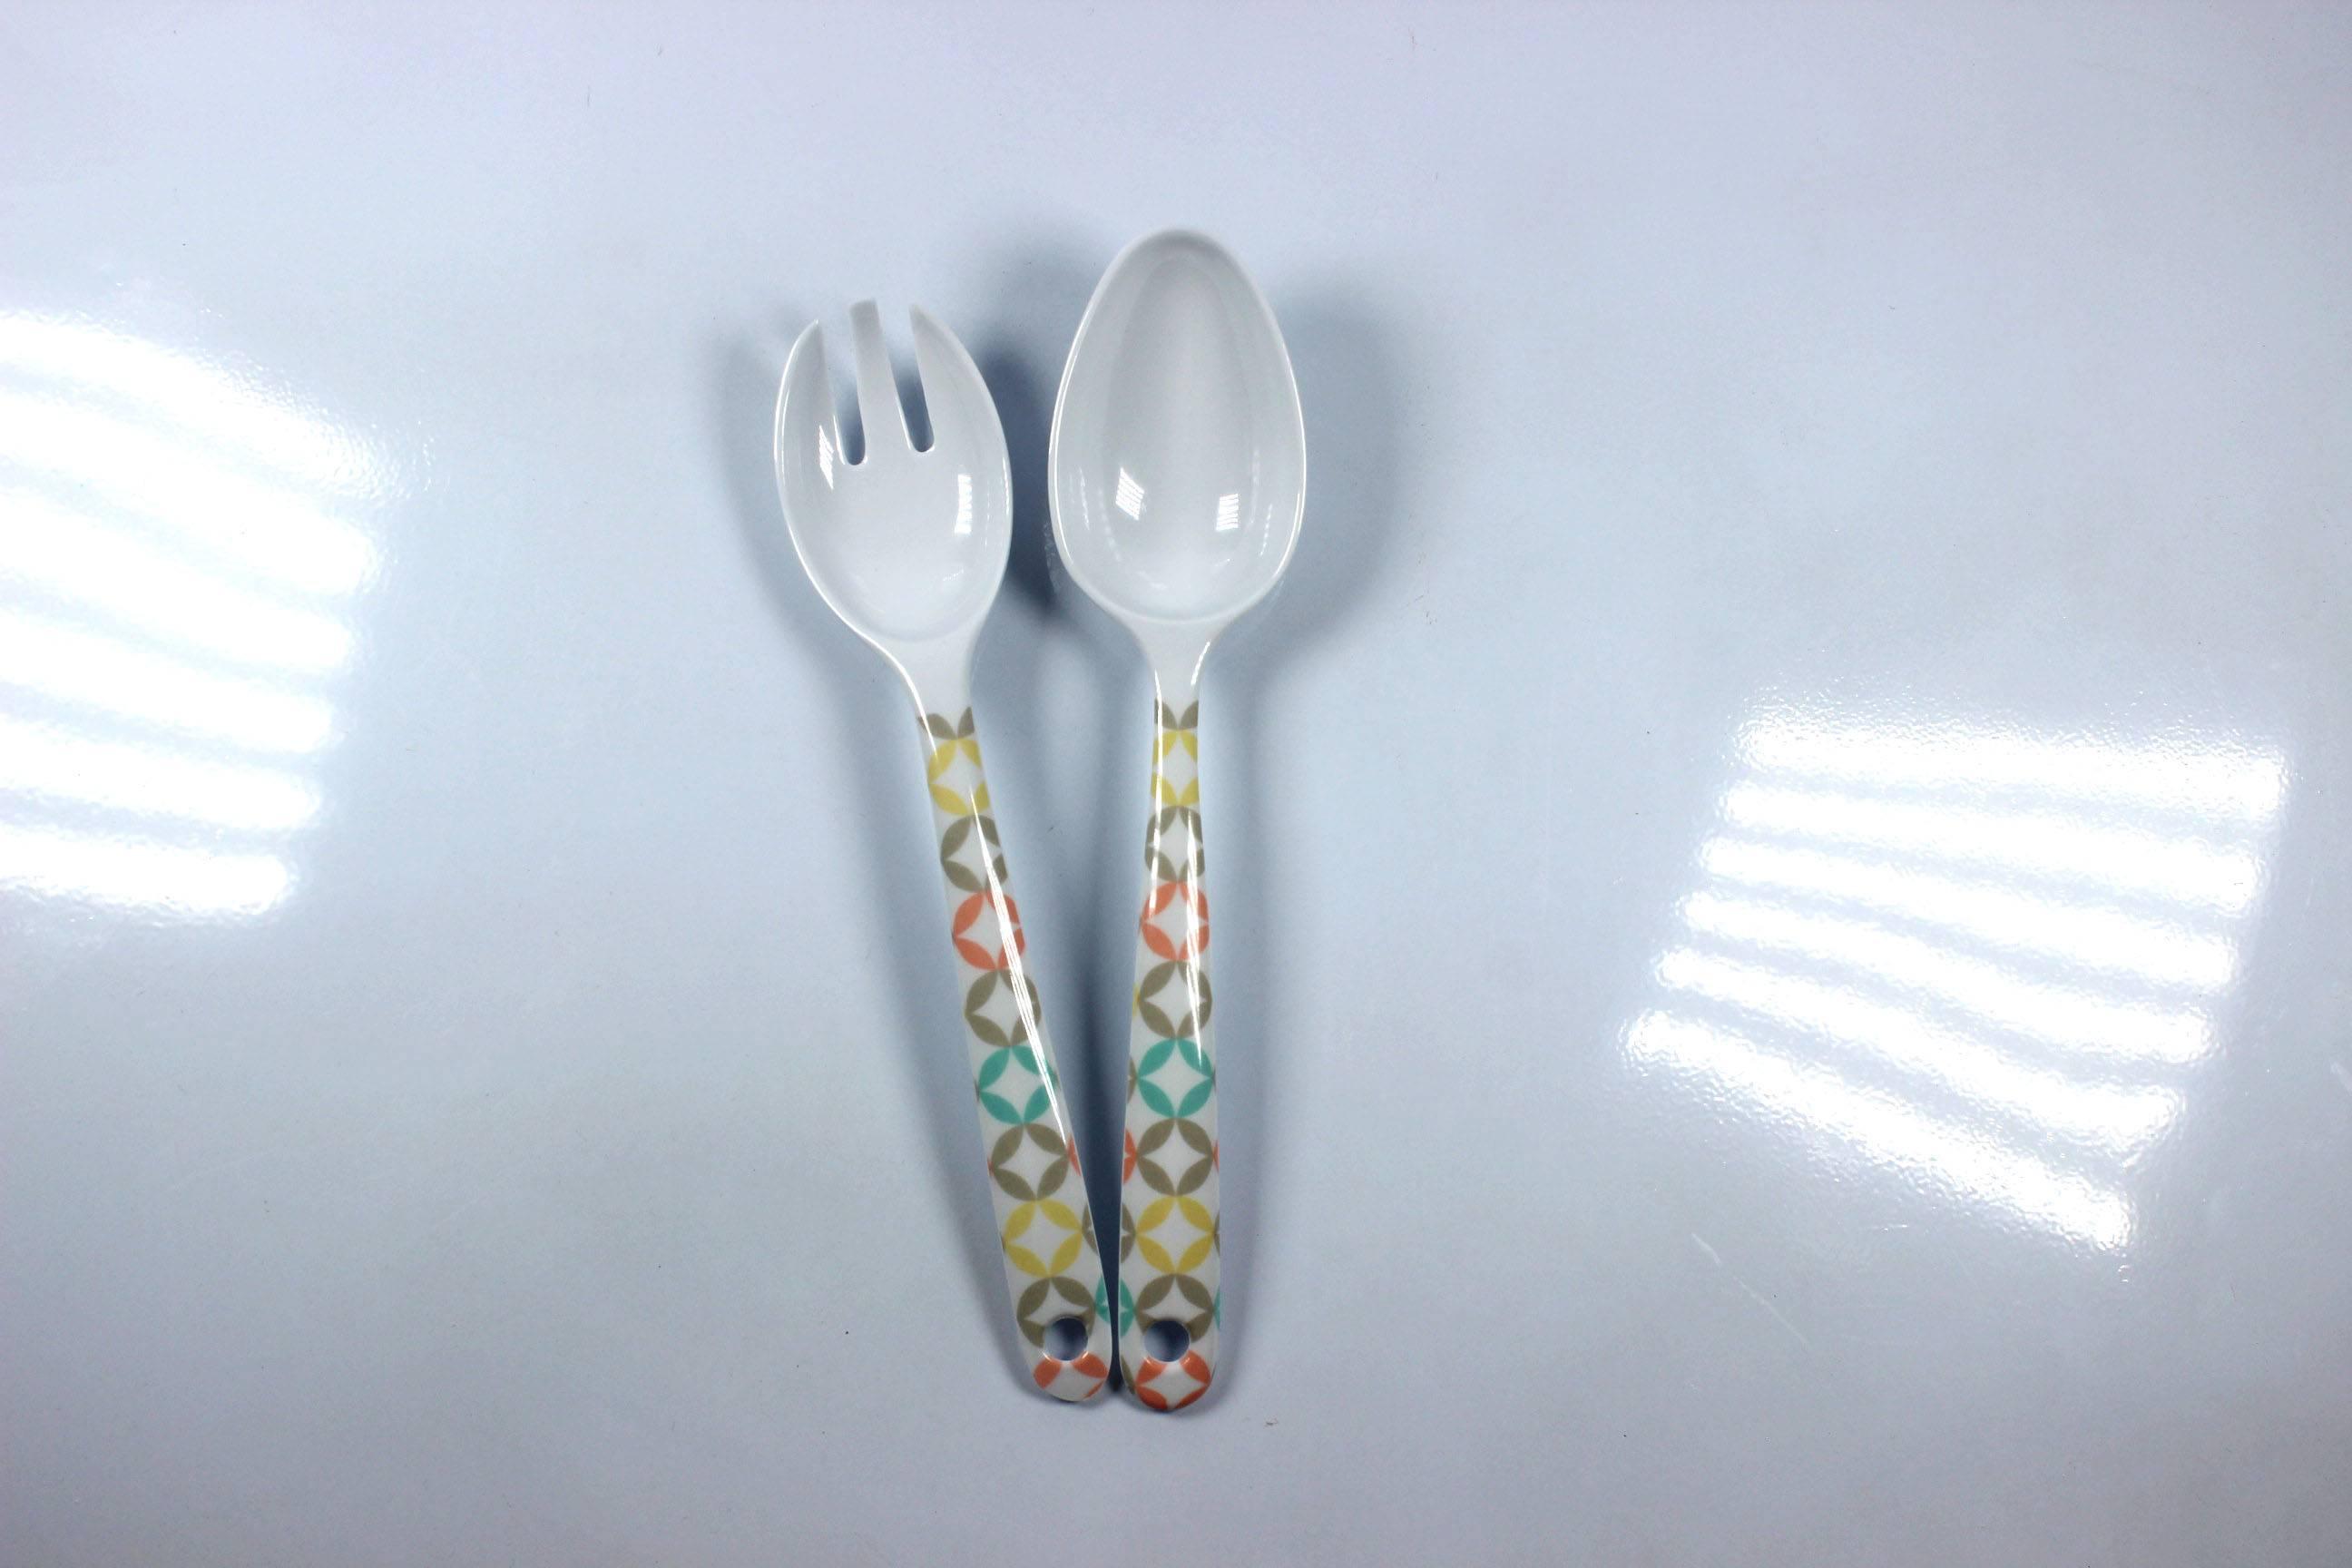 "9.5"" melamine fork and spoon"